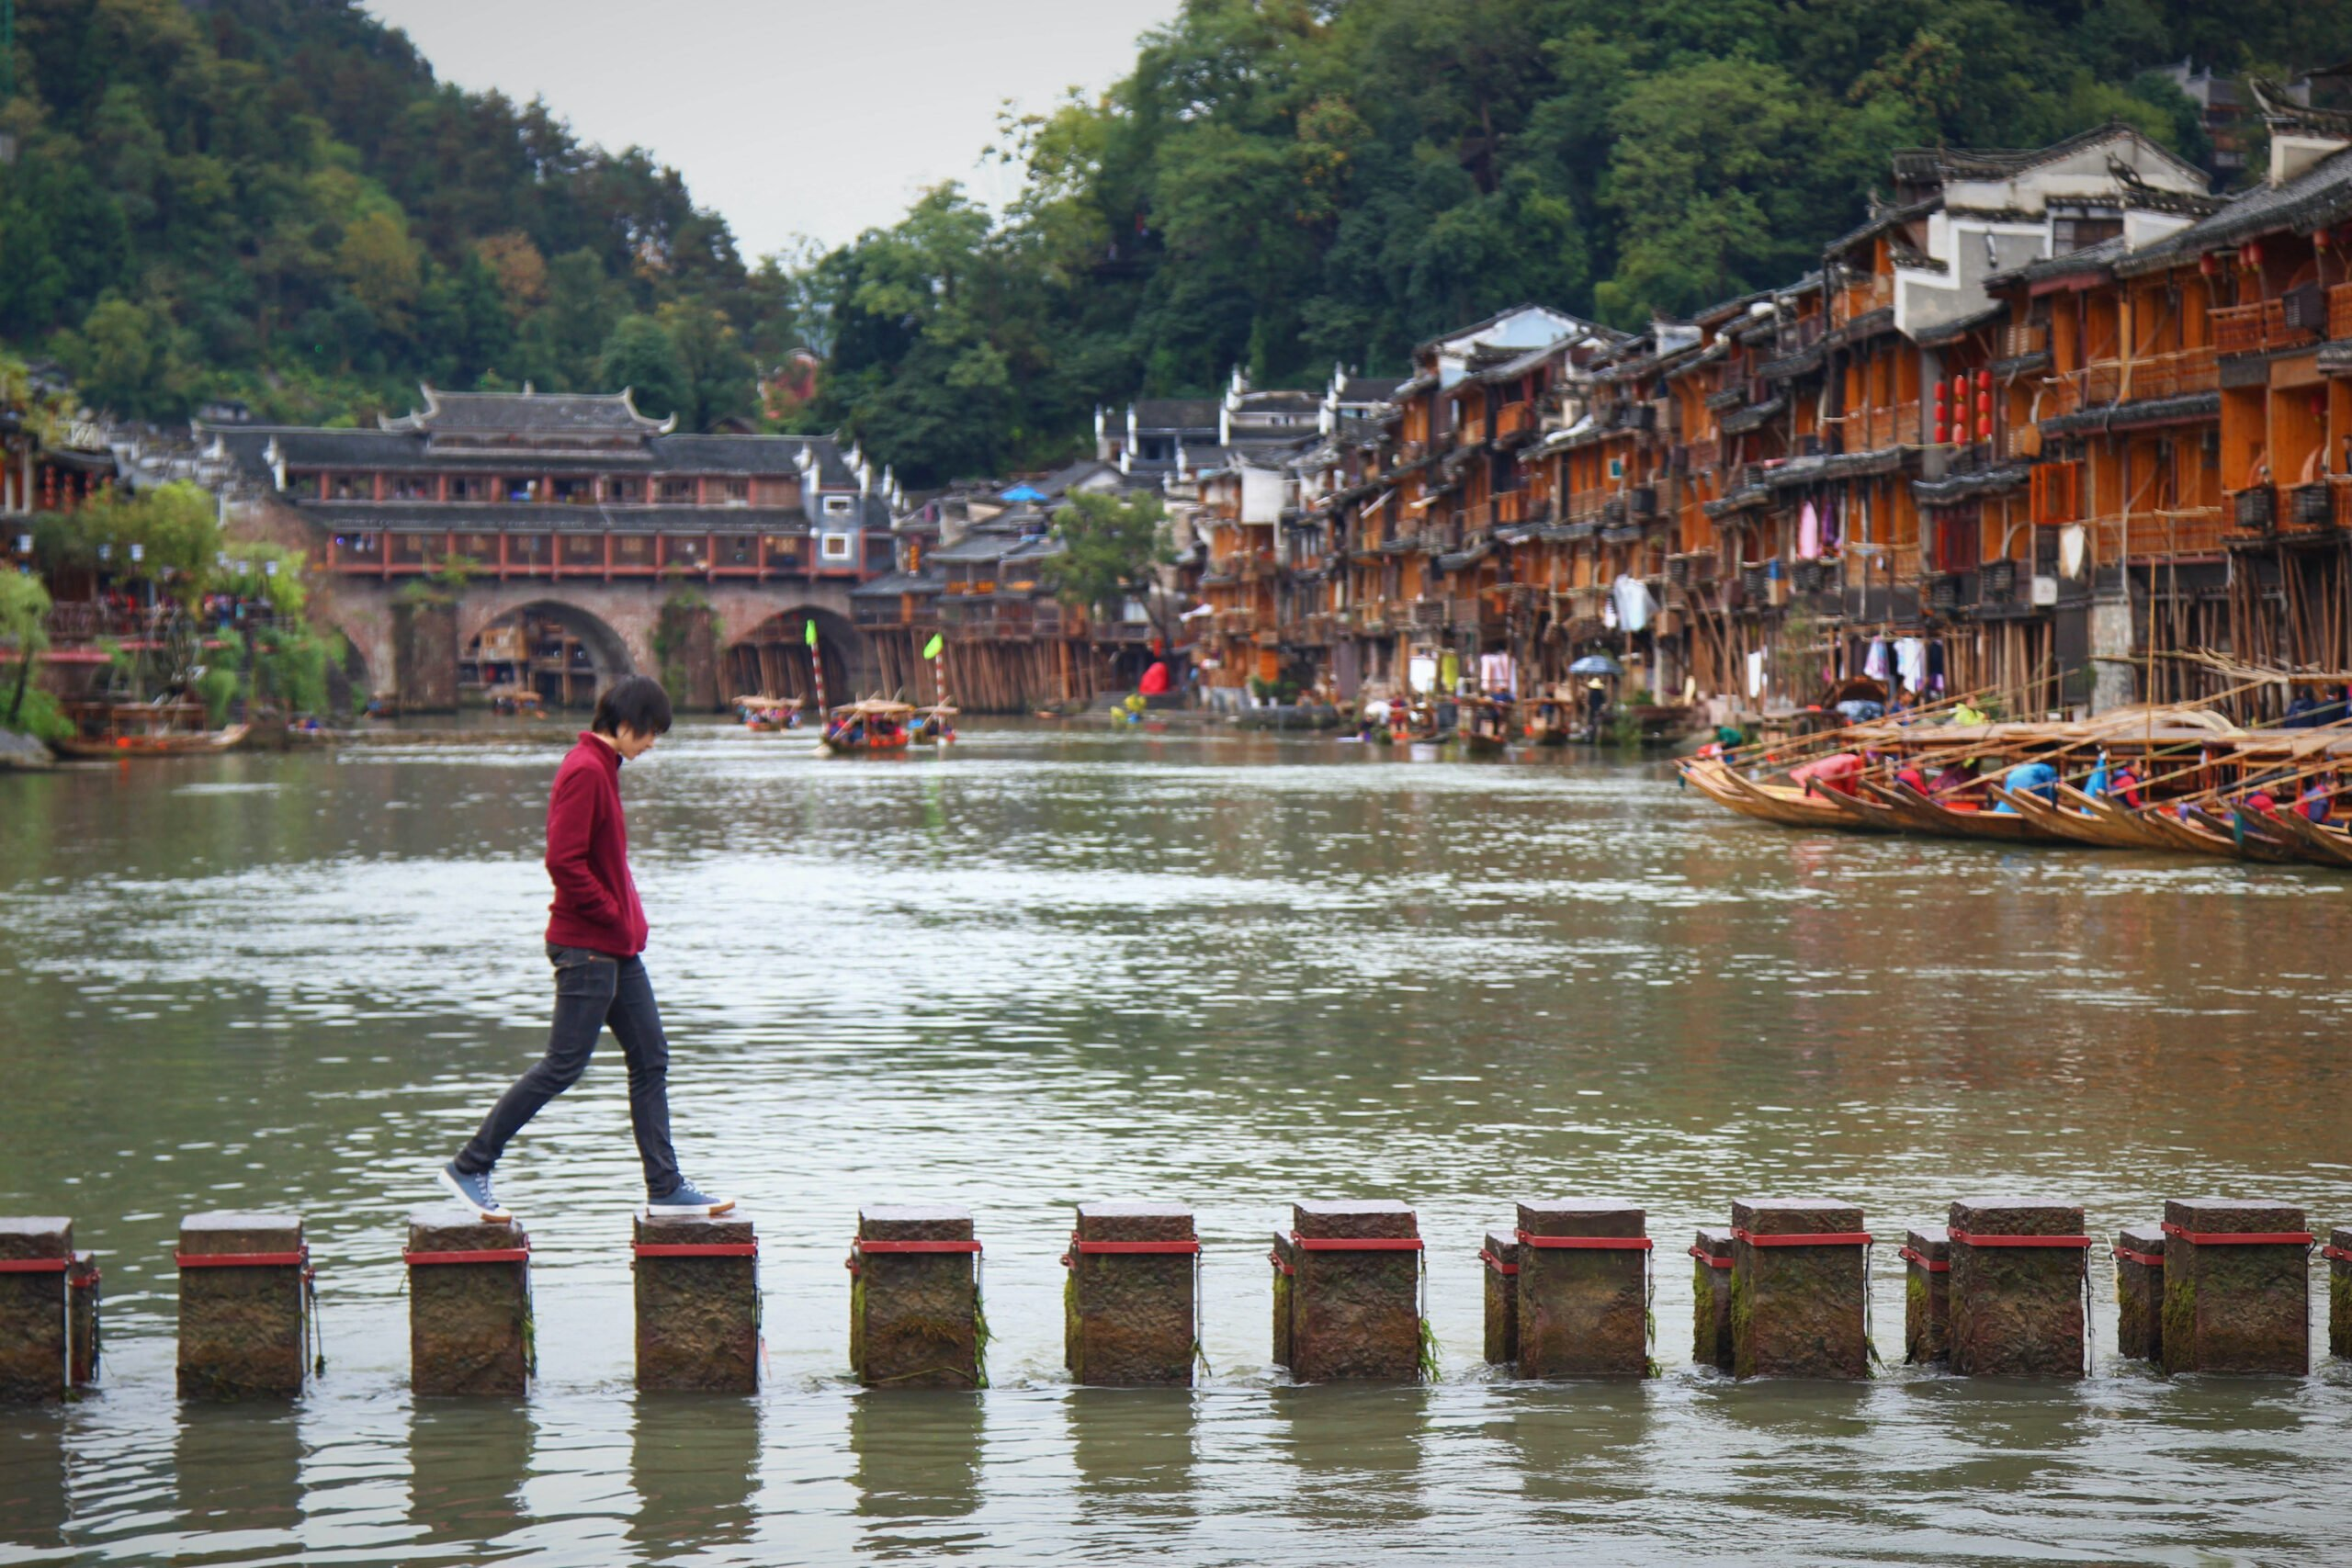 Learn About The History Of Fenghuang In Our Zhangjiajie And Fenghuang 4 Day Package Tour